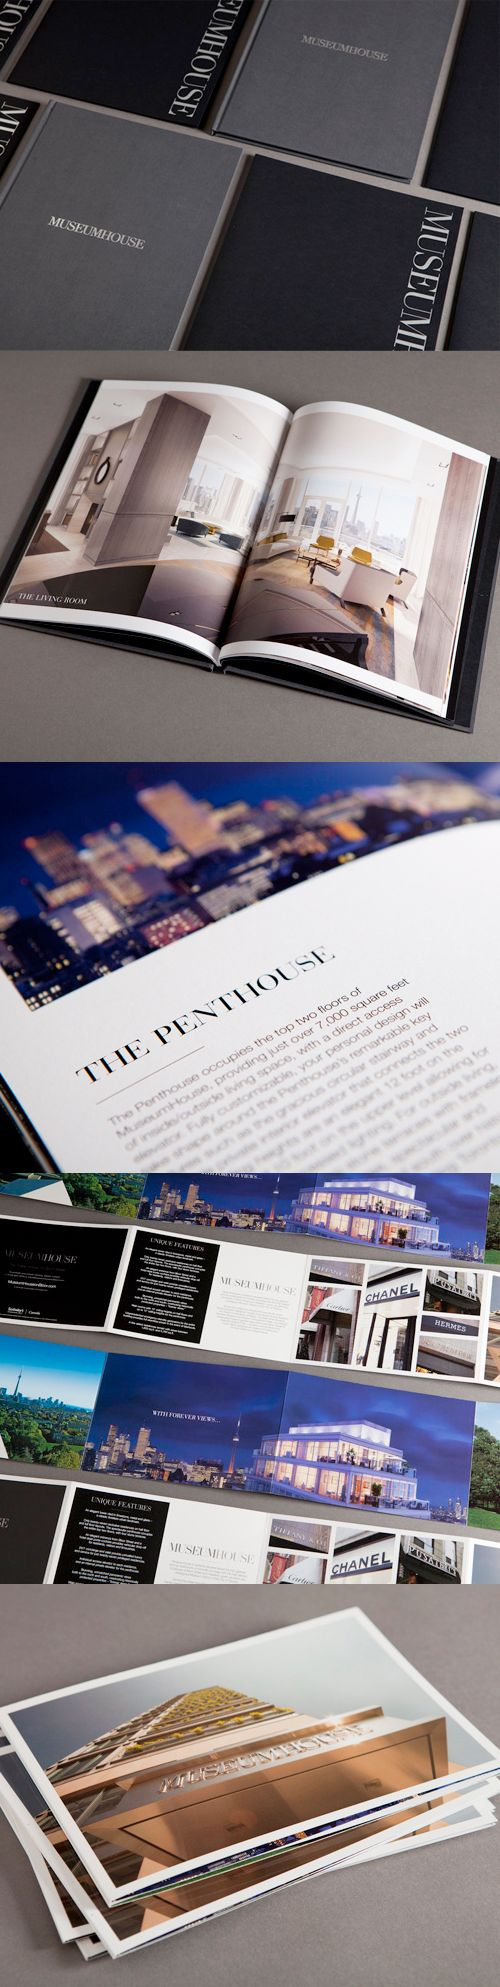 Newly pinned: The beautiful brochure we designed for MuseumHouse.